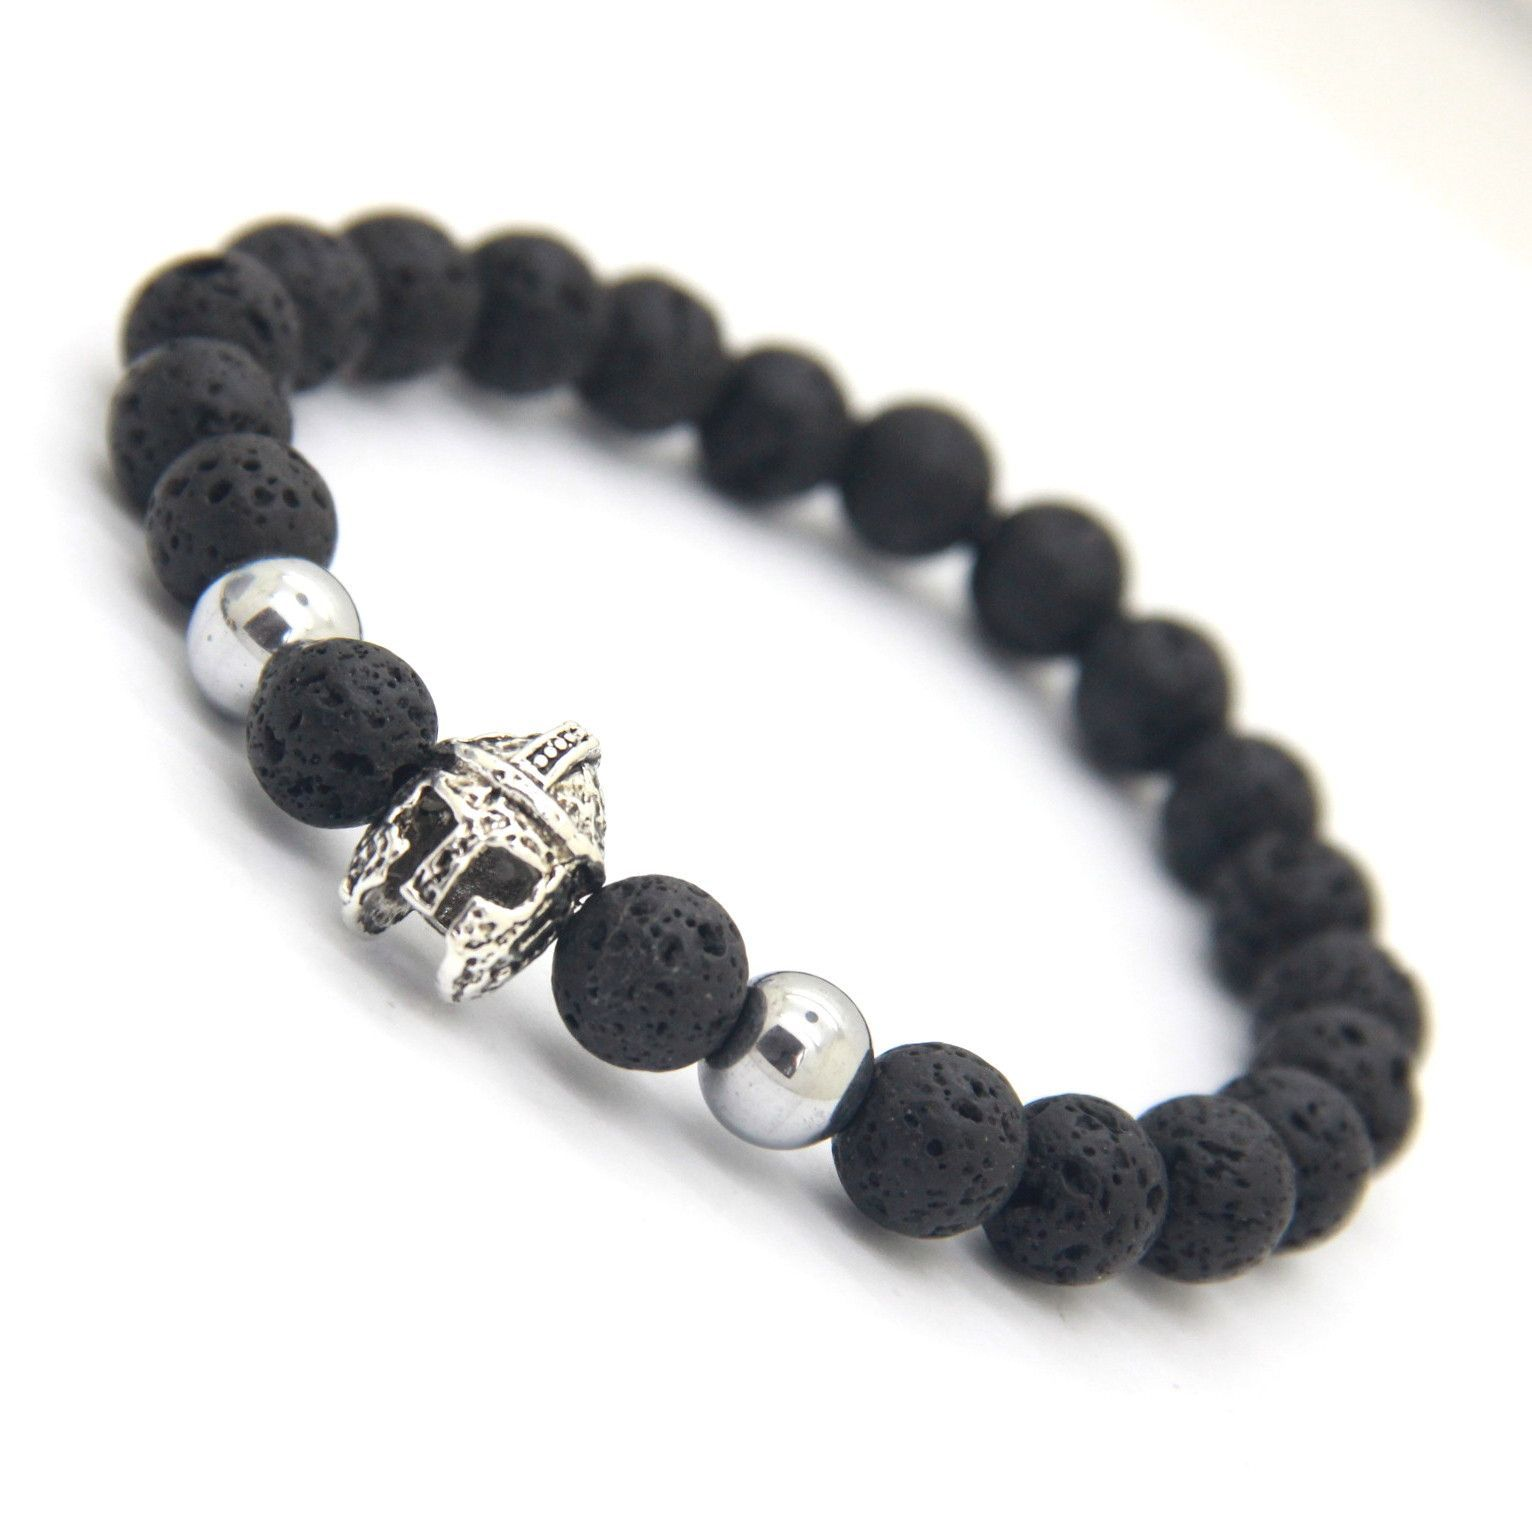 Lava Stone Bead Roman Spartan Warrior Helmet Bracelets For Men